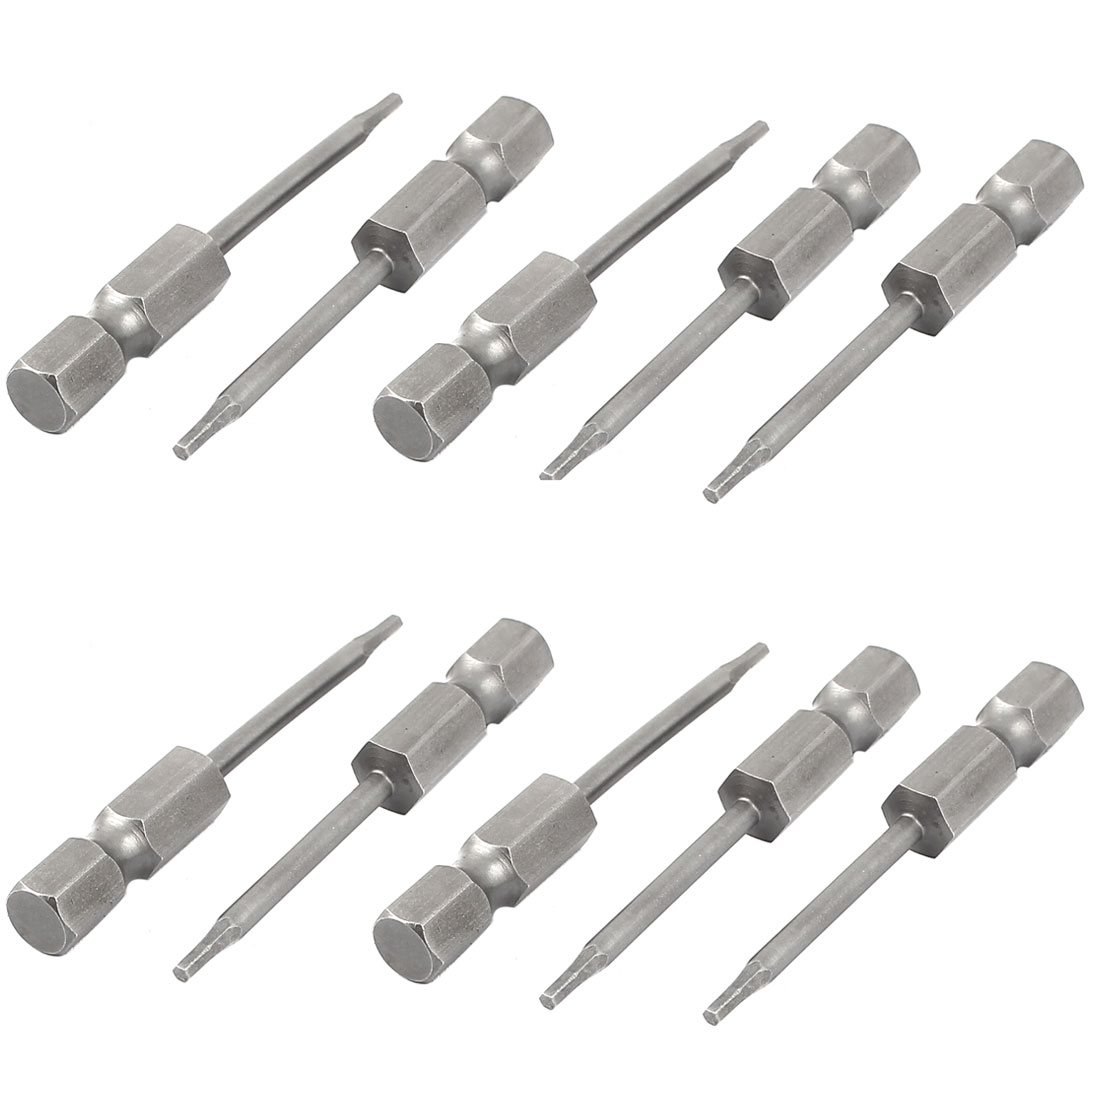 "1/4"" Hex Shank 50mm Long 1.5mm Tip Magnetic Hexagon Screwdriver Bit 10pcs"